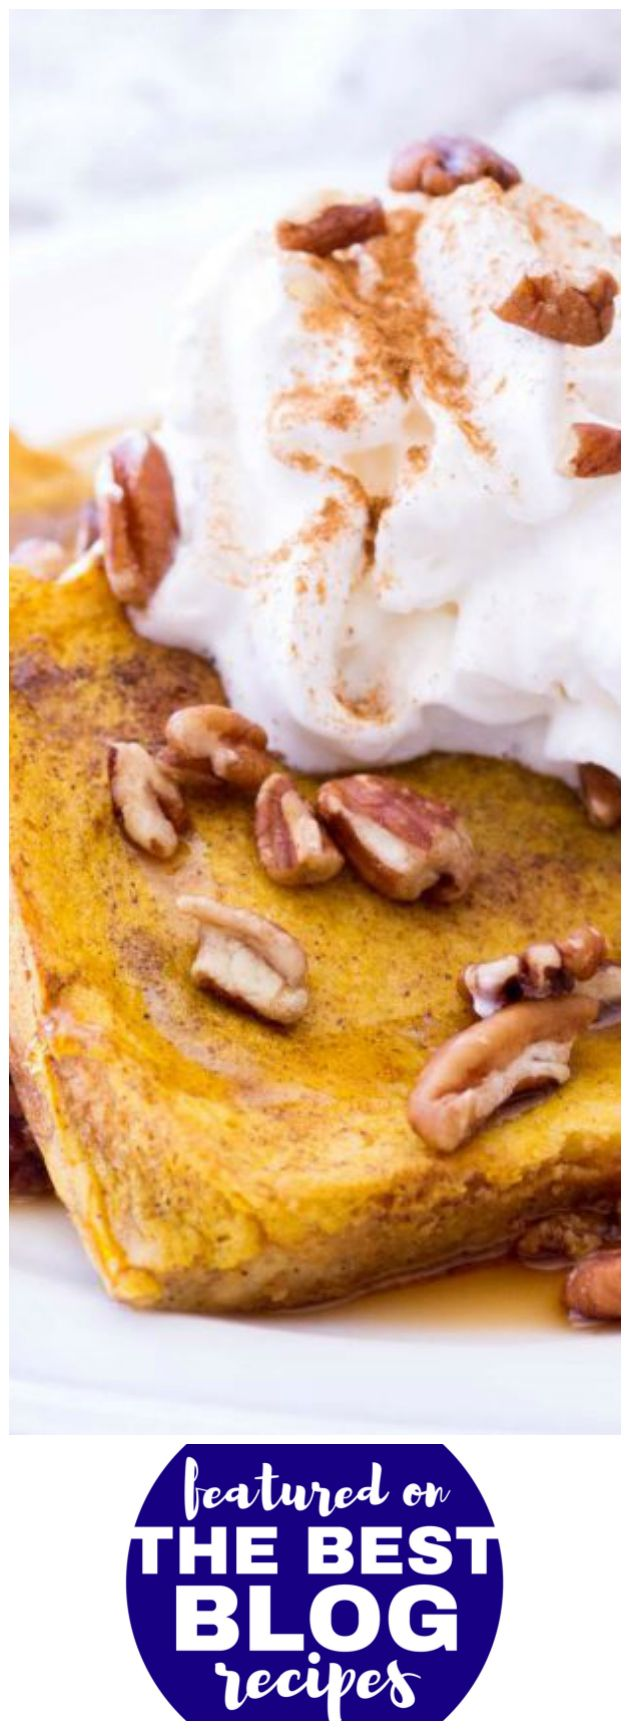 BAKED PUMPKIN FRENCH TOAST from Julie's Eats and Treats is #36 on our list of the BEST FRENCH TOAST RECIPES || Featured on The Best Blog Recipes with the bloggers permissions #pumpkin #breakfast #recipe #recipes